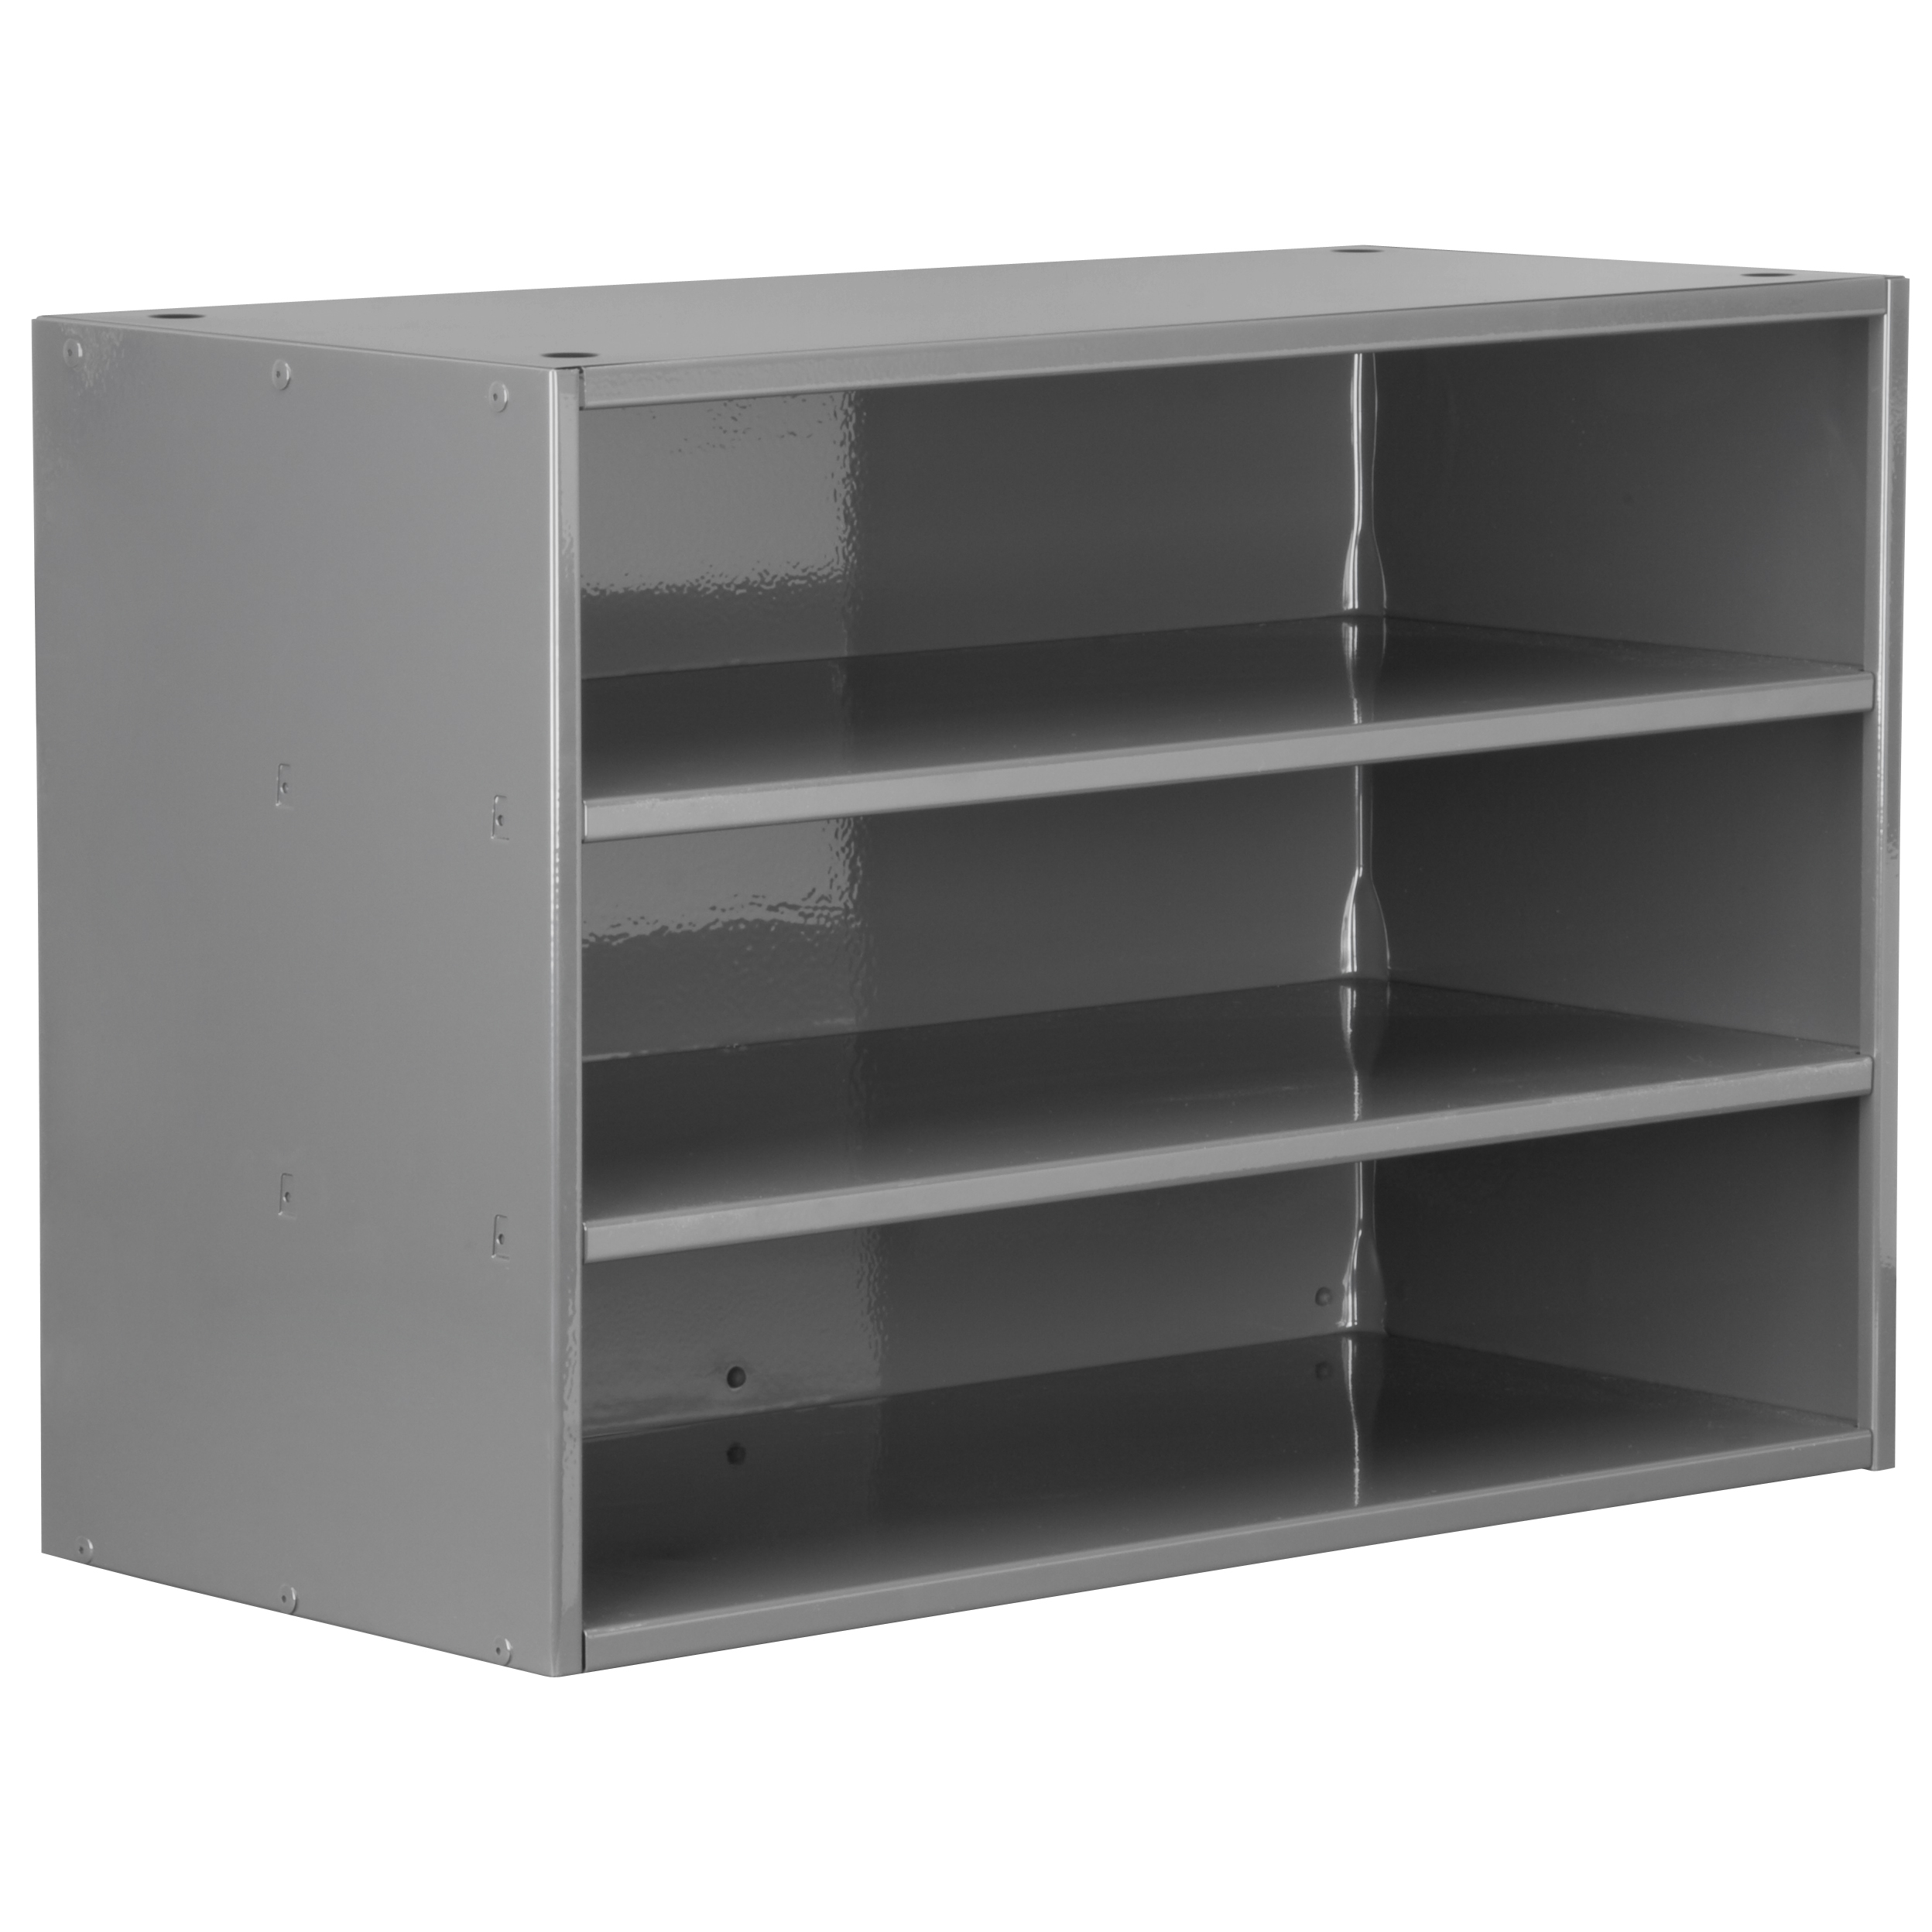 Item DISCONTINUED by Manufacturer.  Modular Cabinet, 23x11x16, no Drawers, Gray (AD2311C).  This item sold in carton quantities of 1.